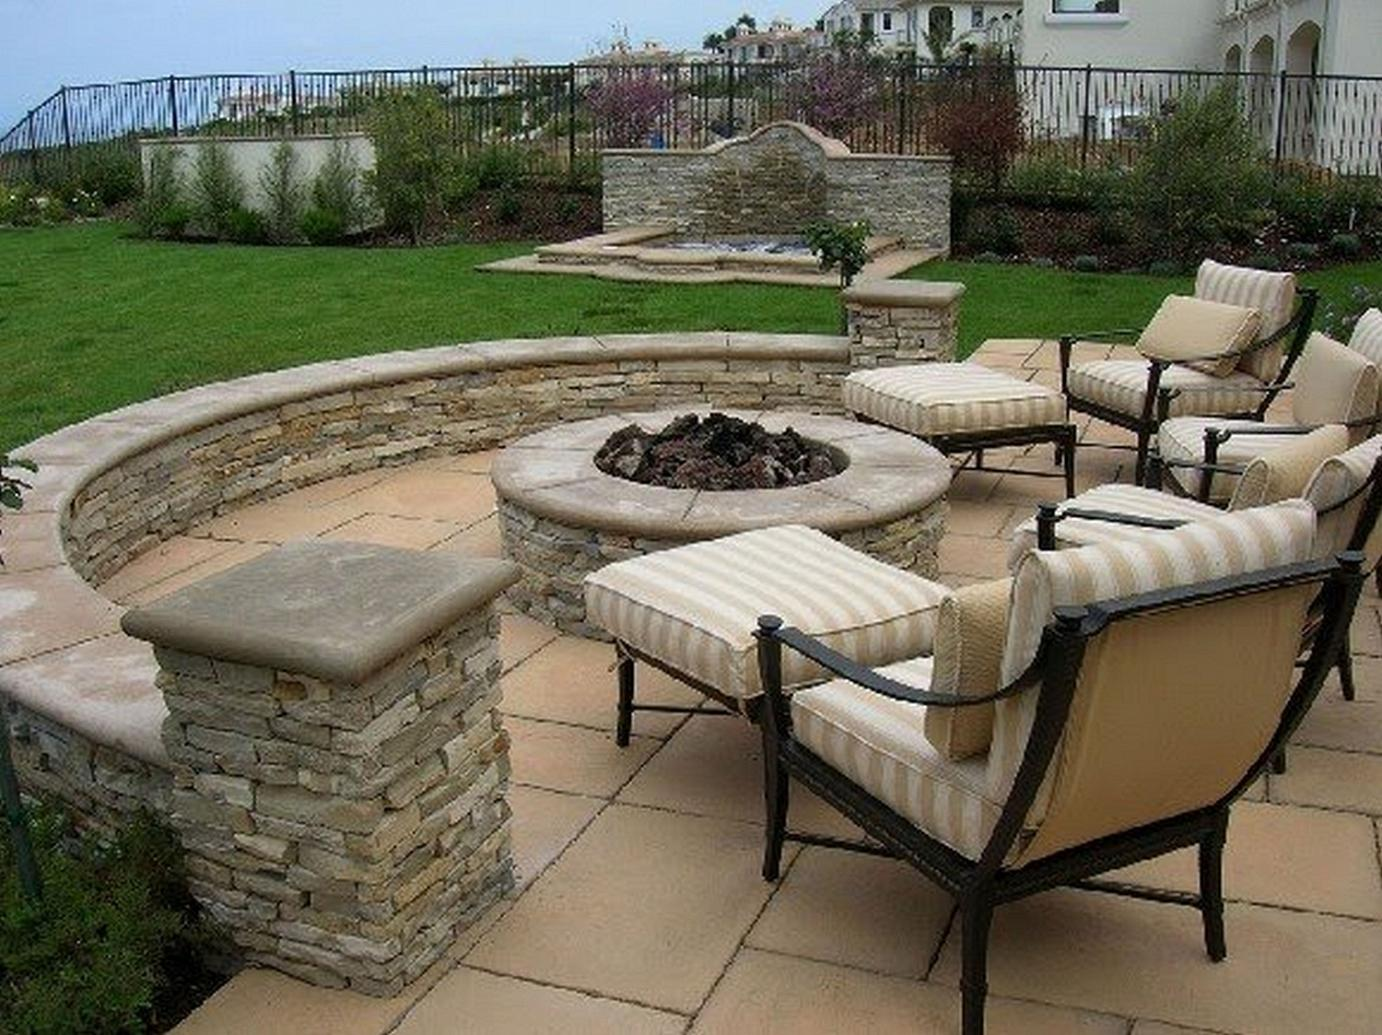 Backyard Patio Ideas On A Budget Large And Beautiful Photos Photo To Select  Backyard Patio Ideas On A Budget Design Your Home.